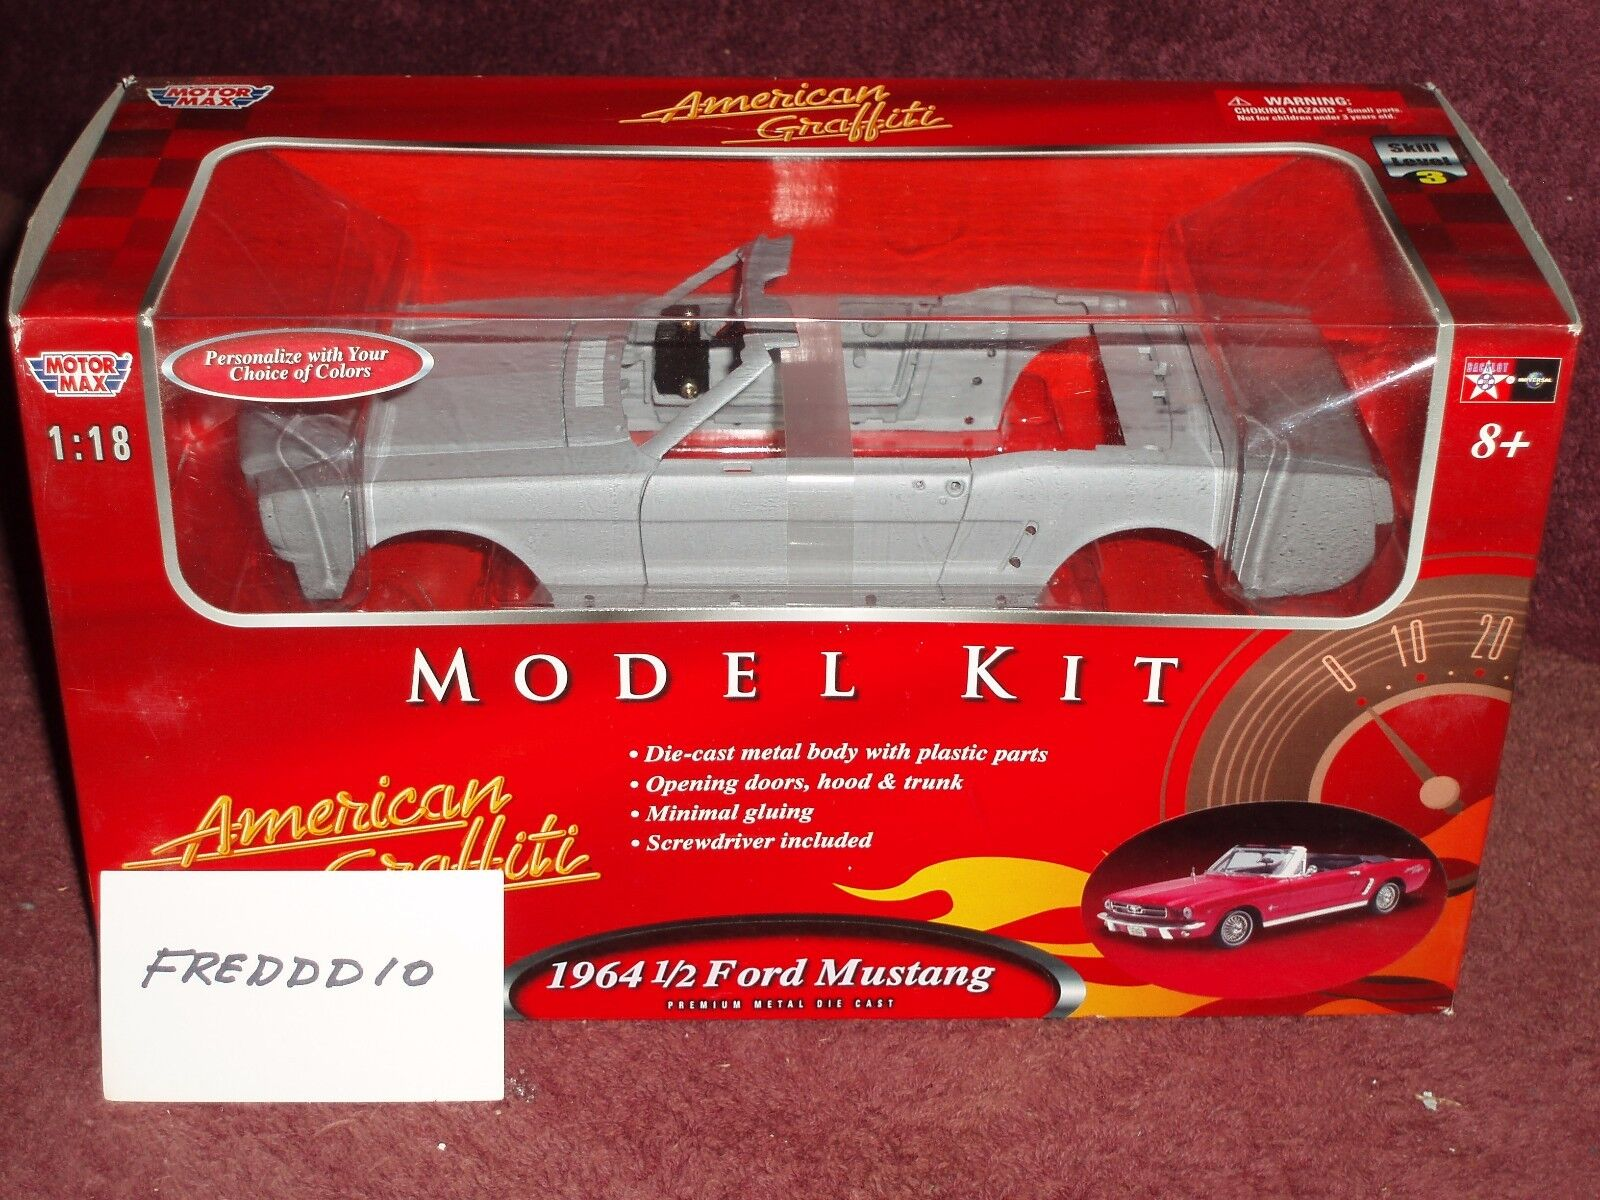 MOTOR MAX 1964 1 2 FORD MUSTANG CONV CONV CONV MODEL KIT 1 18 PRIMERED SKILL LEVEL 3 7cce36